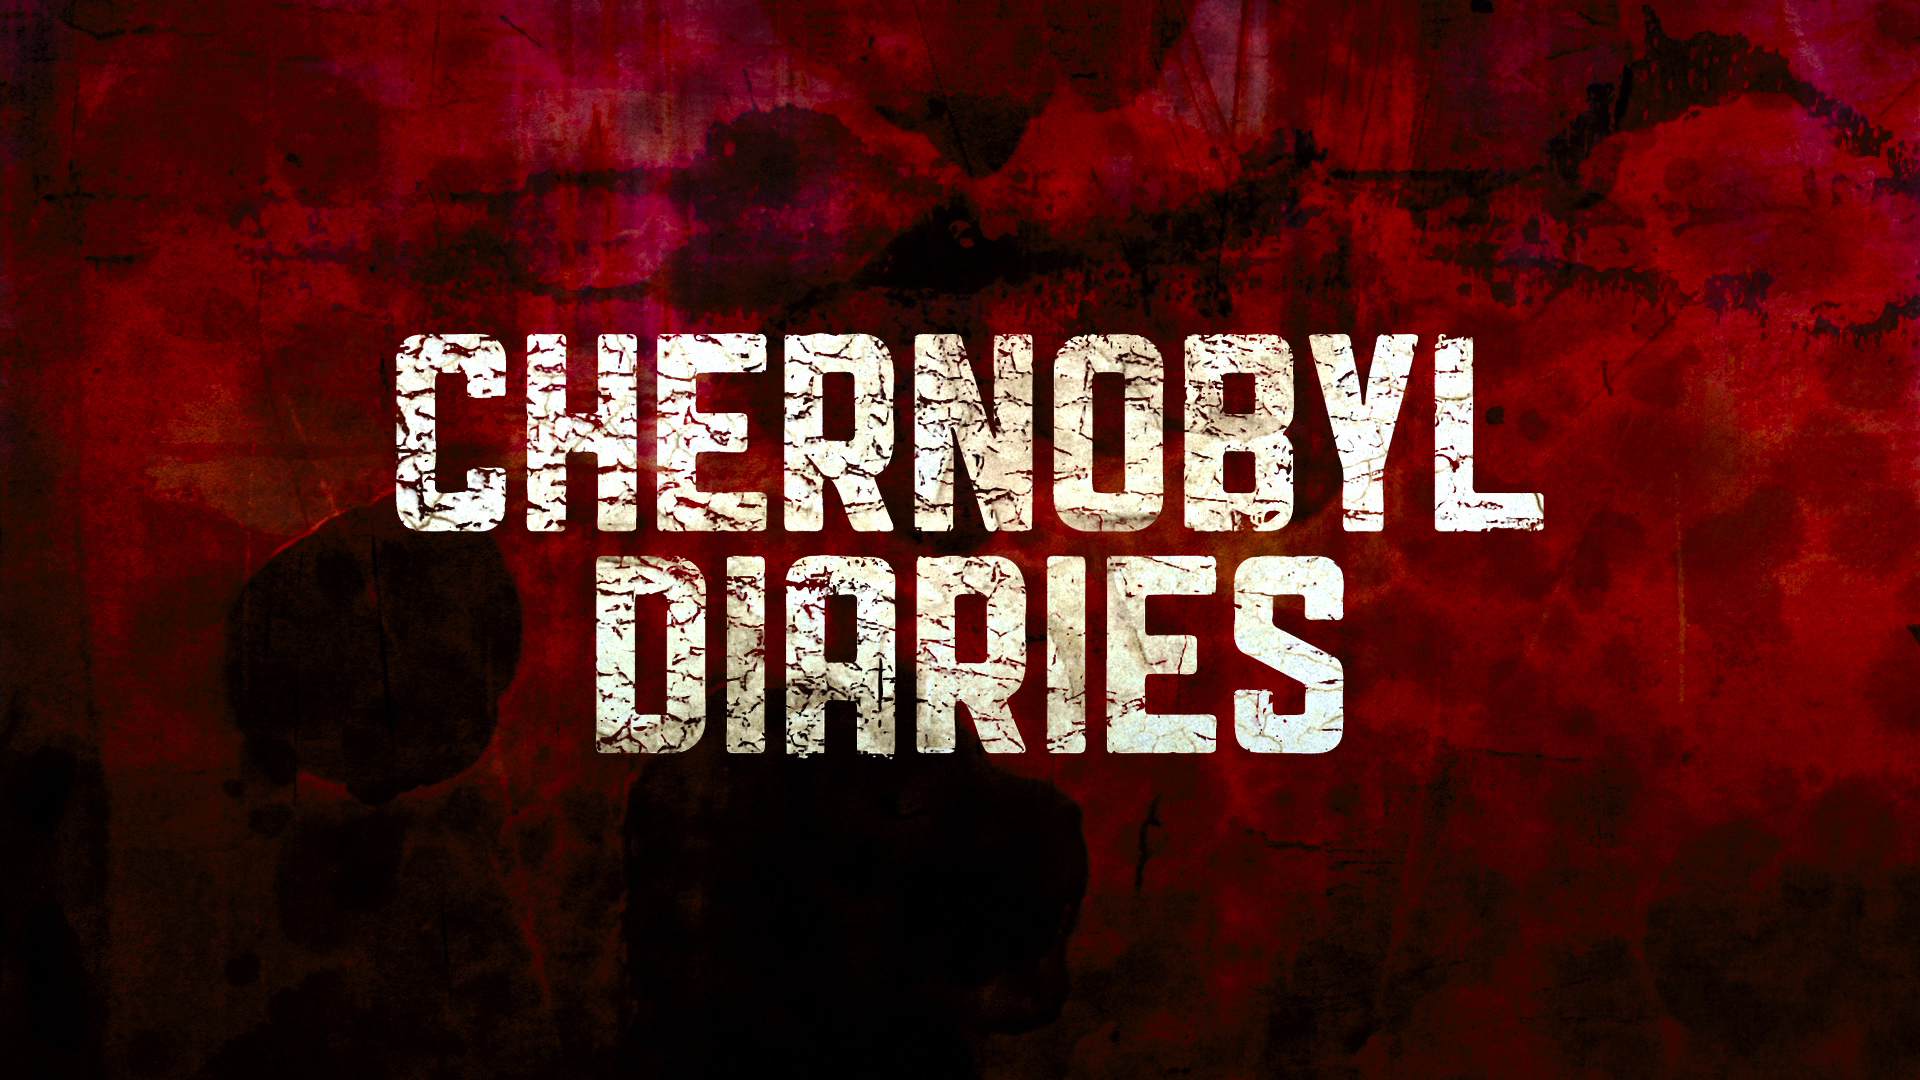 Chernobyl Diaries (Blu-ray) : DVD Talk Review of the Blu-ray